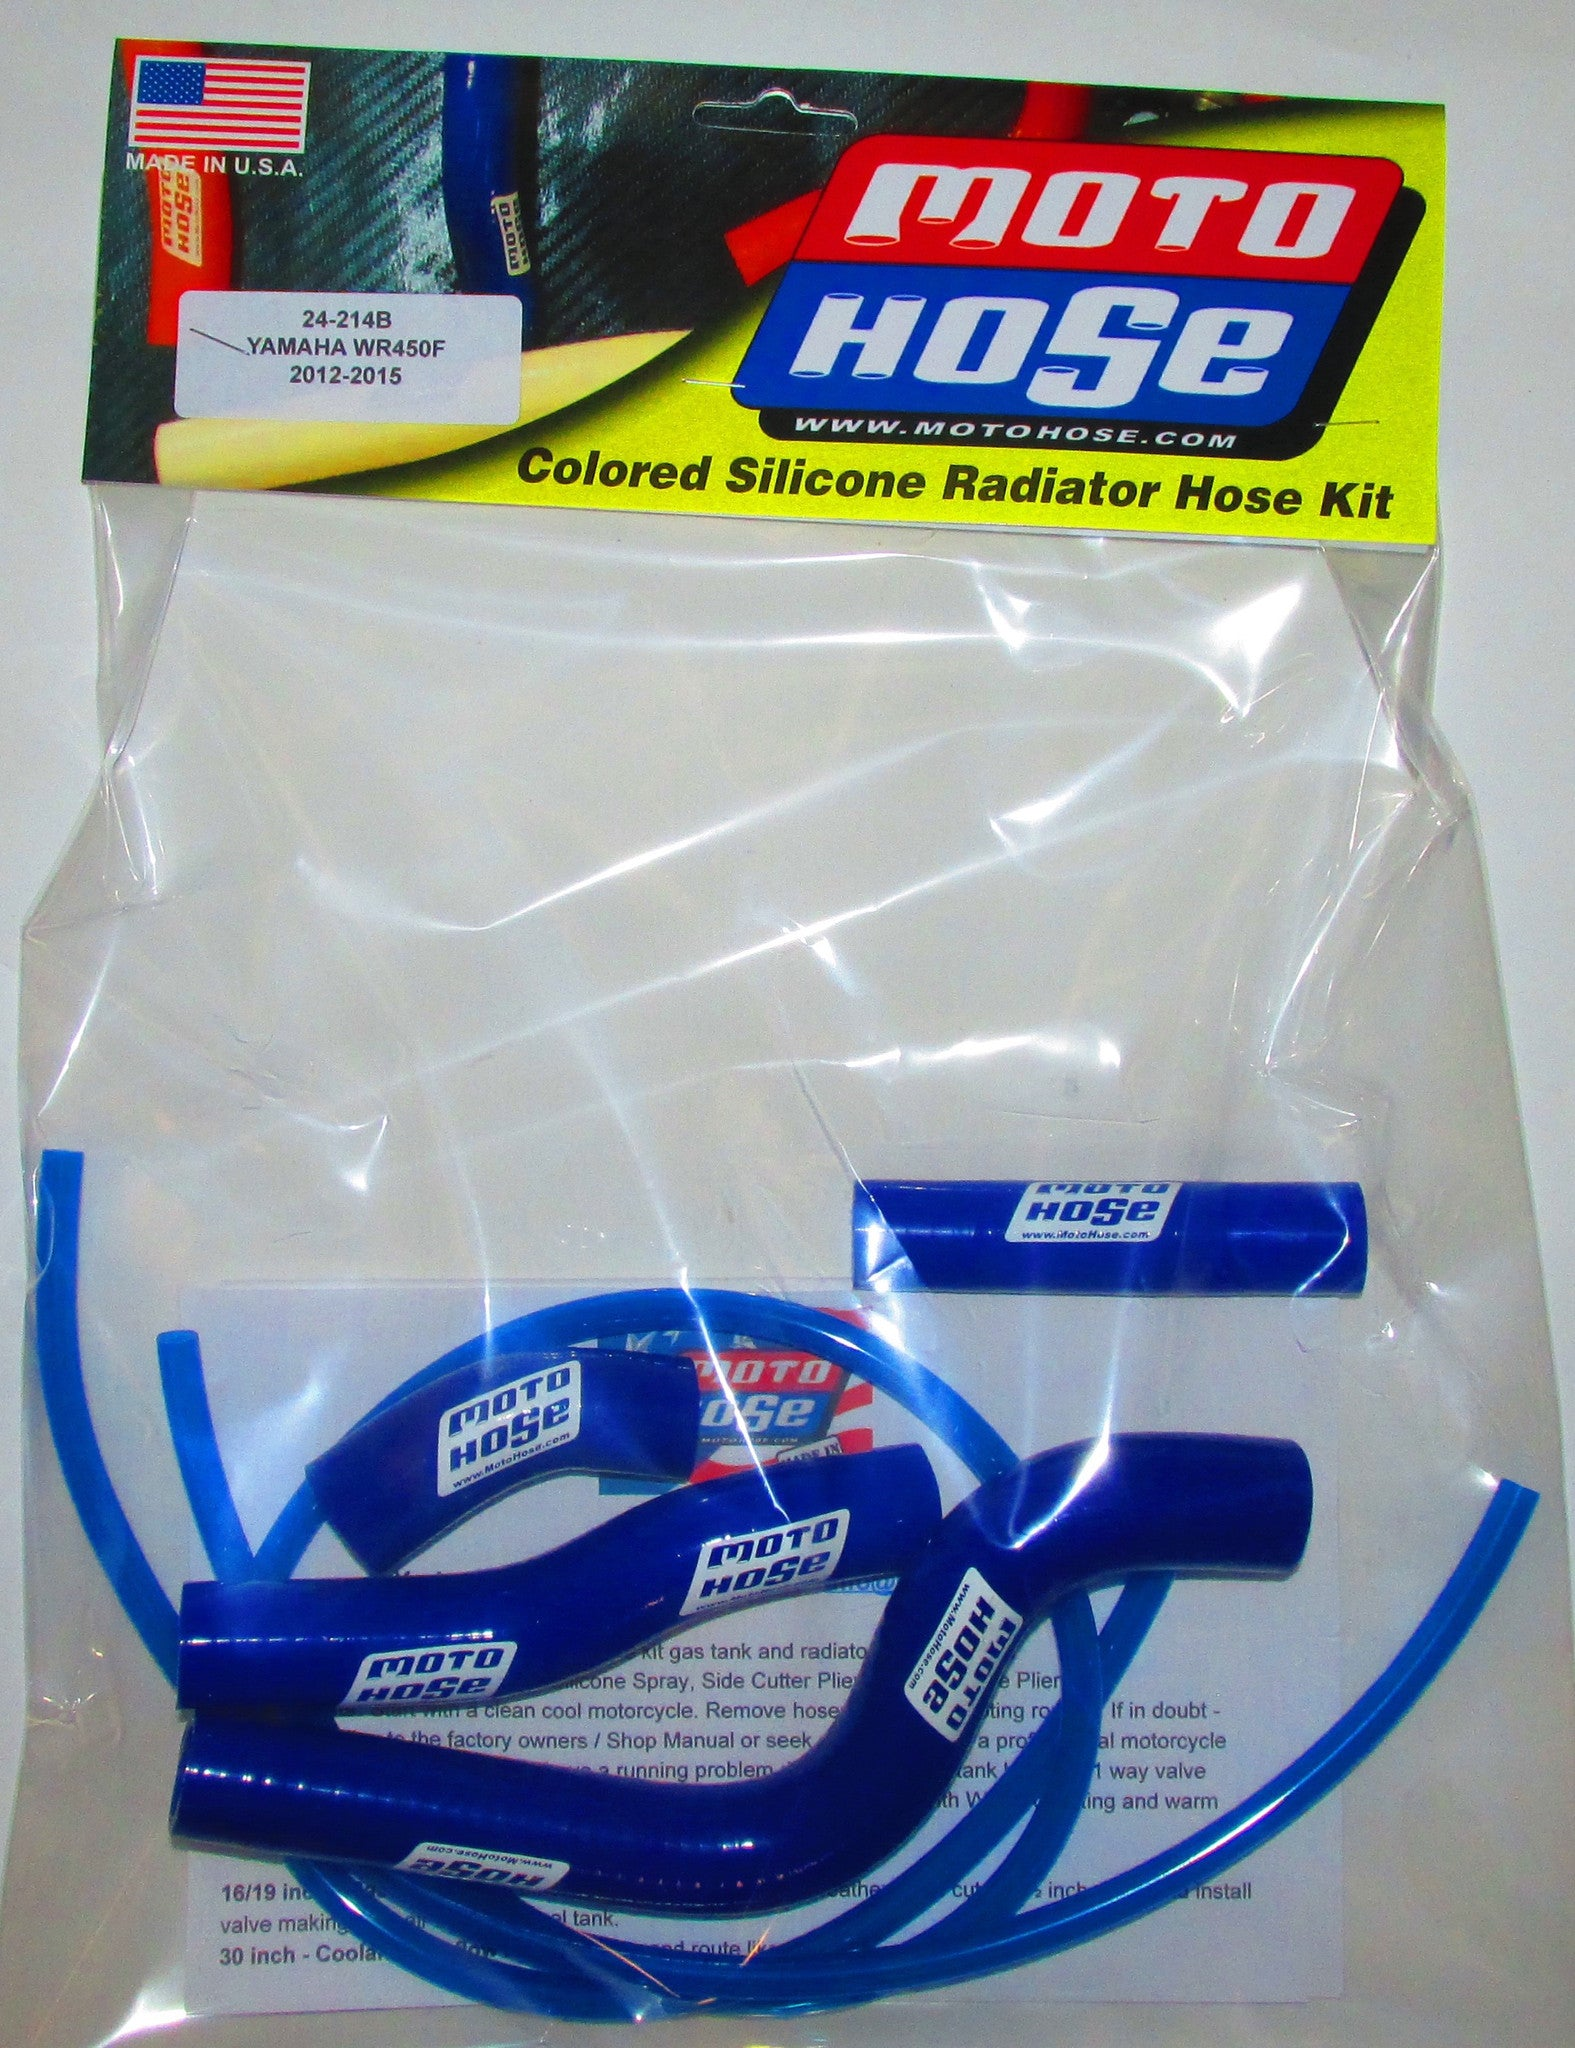 YAMAHA PREMIUM OFF ROAD HOSE KIT